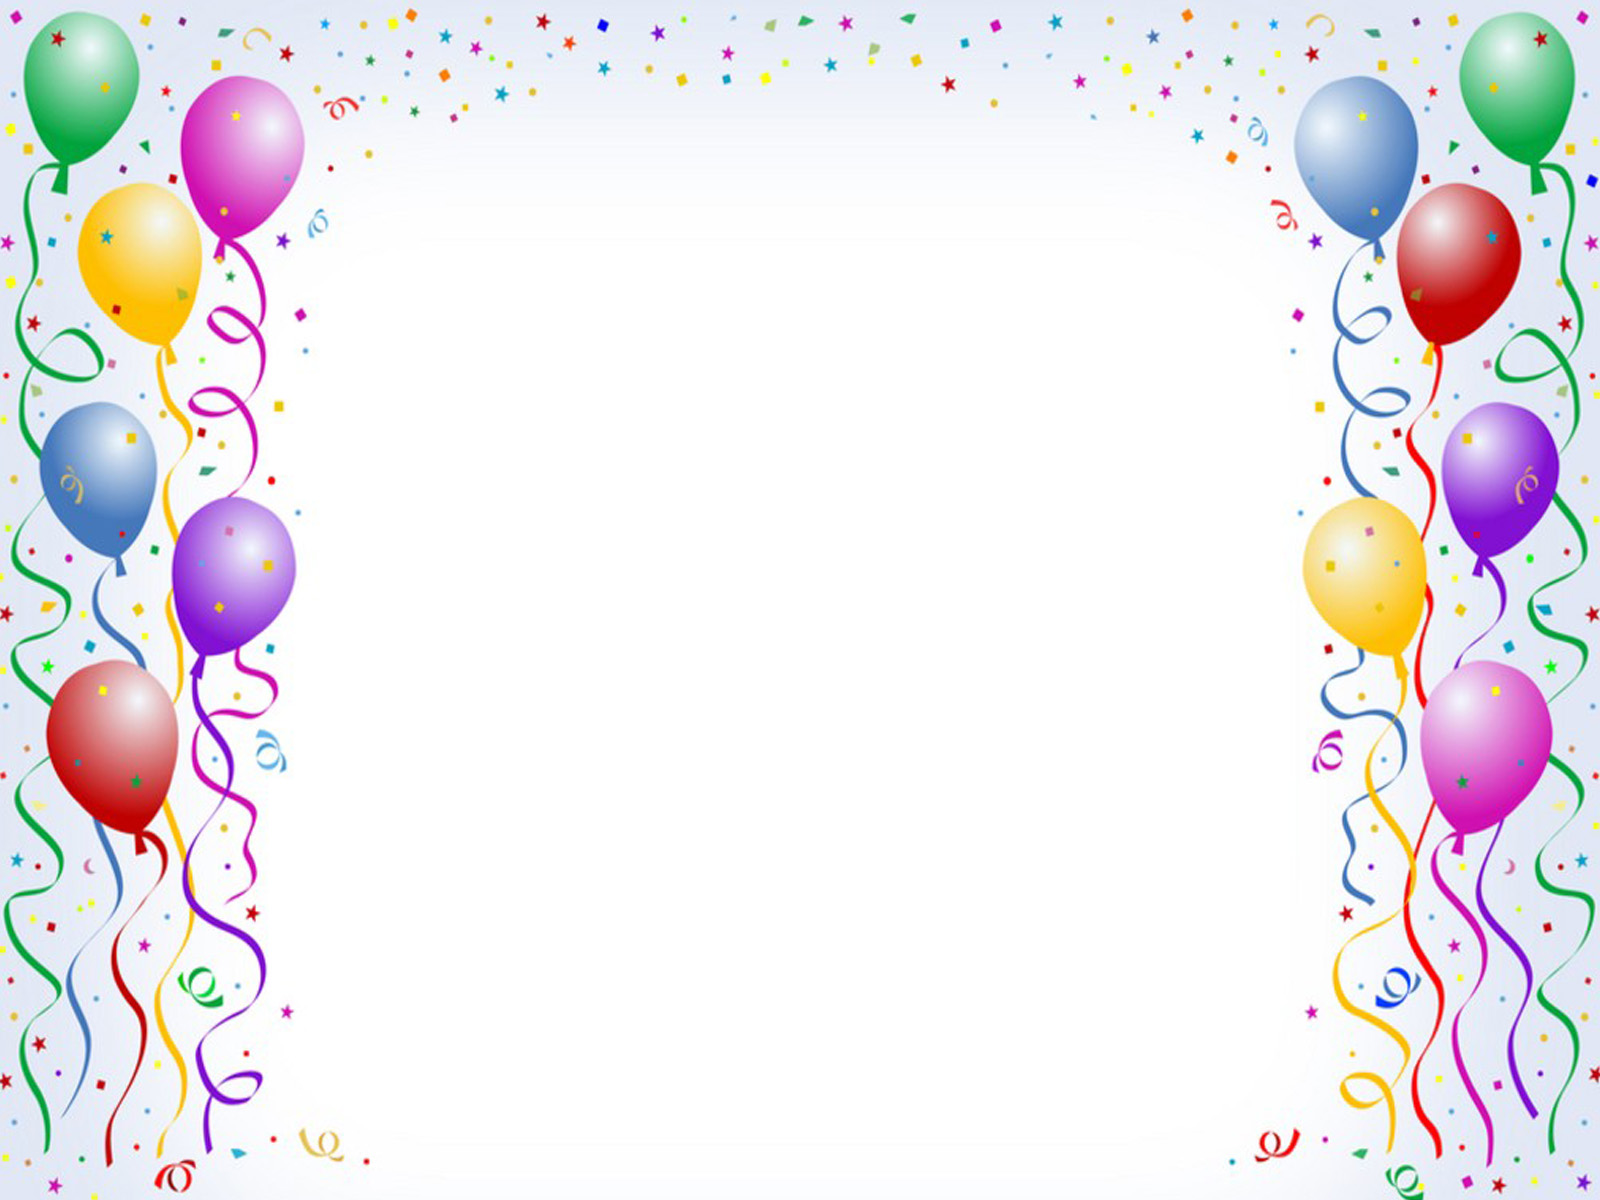 40th birthday background images ; birthday-background-ppt-22